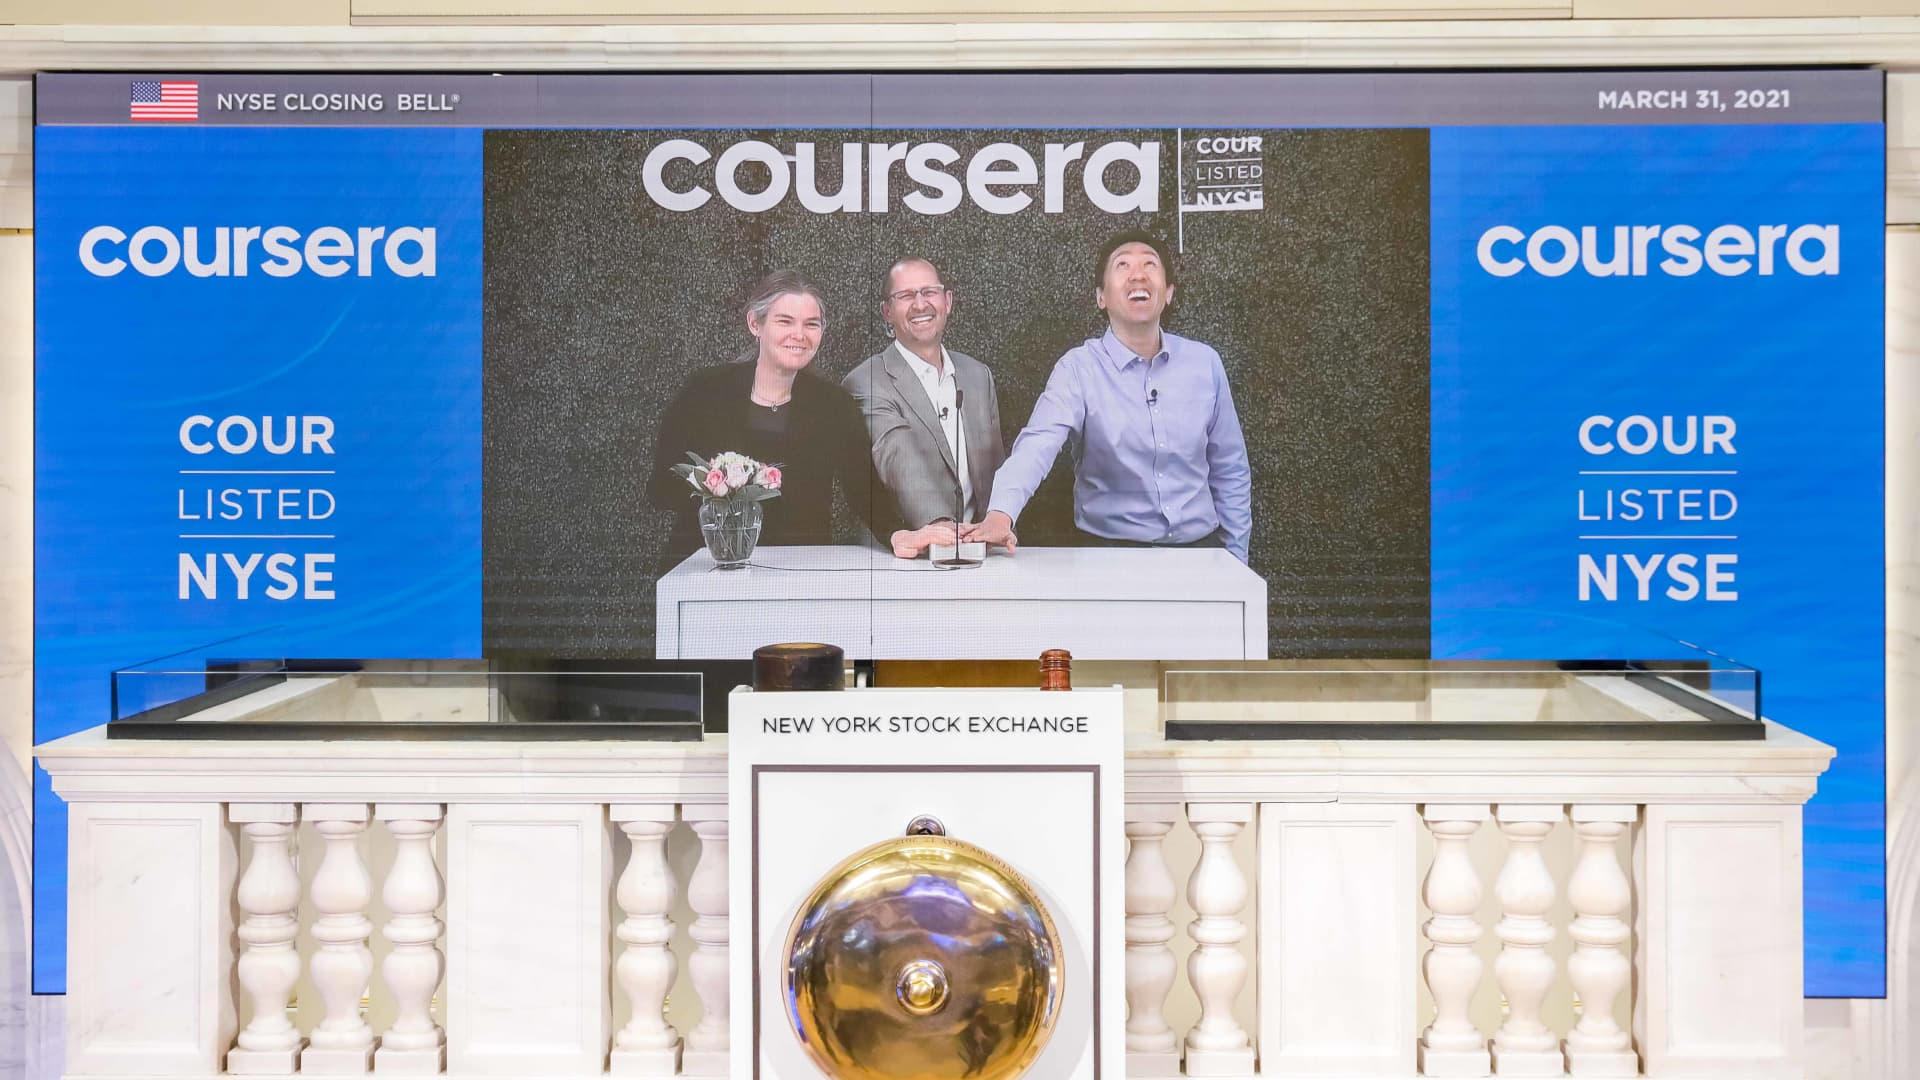 The New York Stock Exchange welcomes Coursera, (NYSE: COUR), today, Wednesday, March 31, 2021, in celebration of its Initial Public Offering. To honor the occasion, Coursera Founders Andrew Ng and Daphne Koller and Coursera CEO Jeff Maggioncalda virtually ring The Opening Bell®.